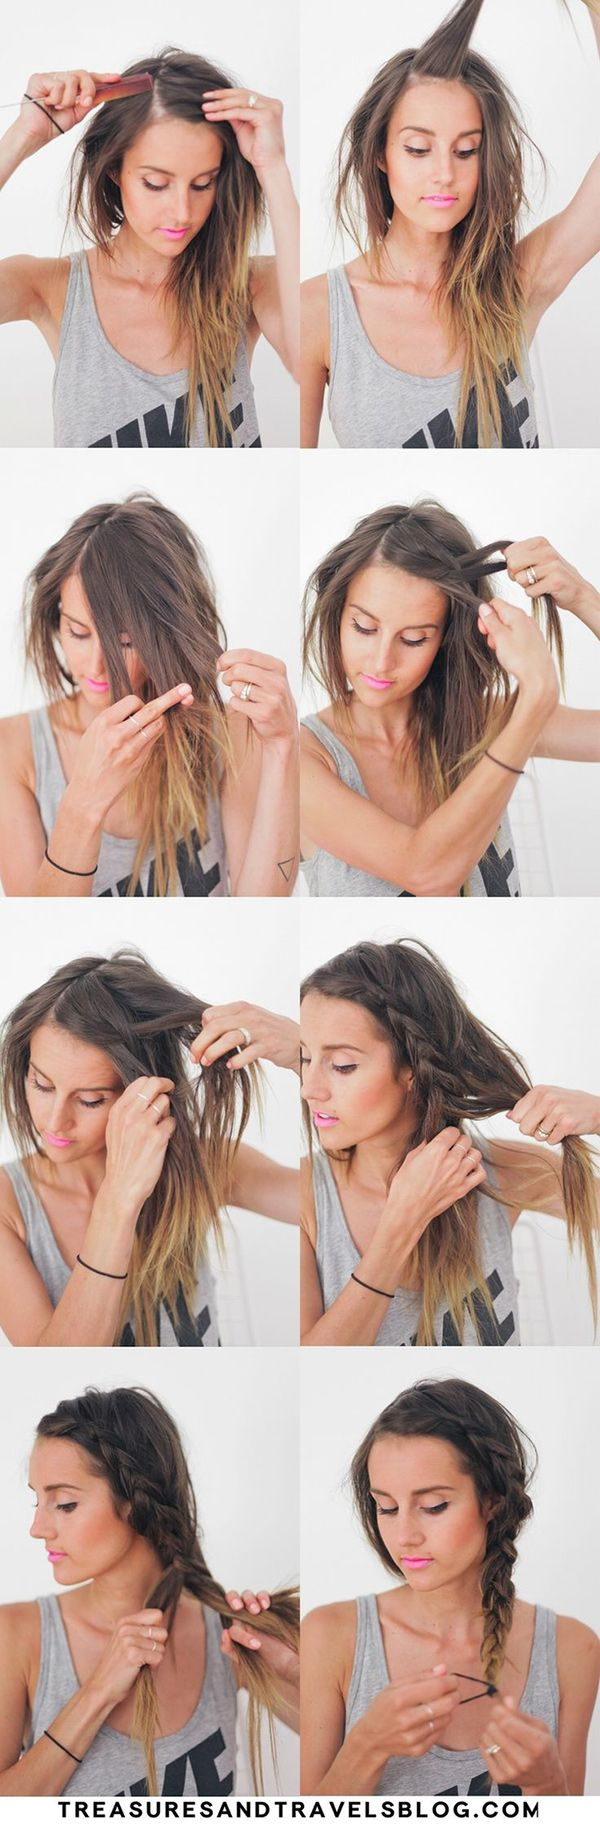 Hairstyles That Are Way Better With Dirty Hair  Hair style